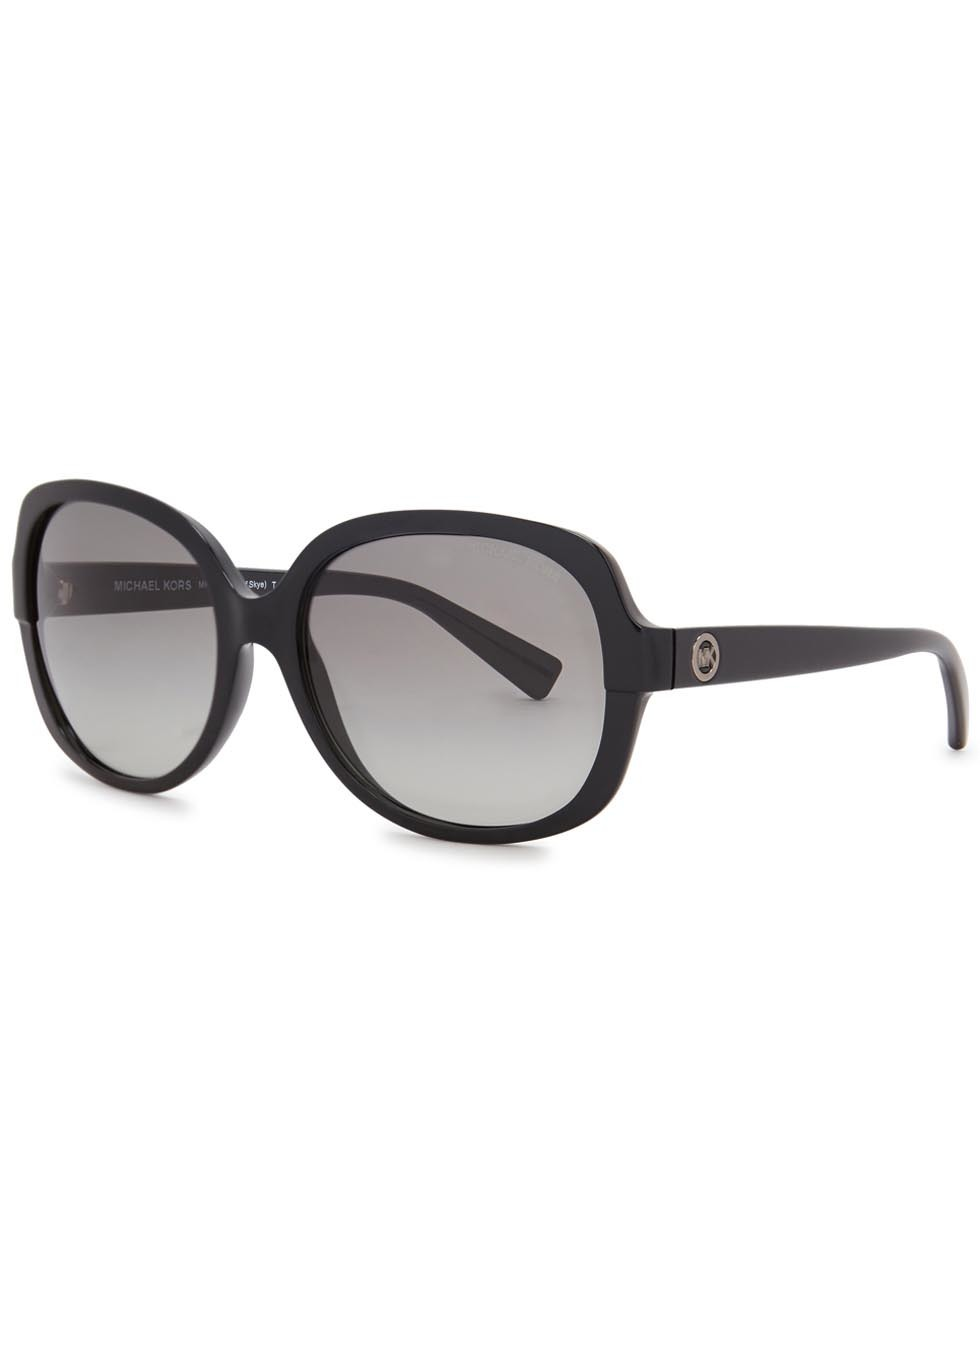 Isle Of Skye Square Frame Sunglasses - predominant colour: black; occasions: casual, holiday; style: square; size: large; material: plastic/rubber; pattern: plain; finish: plain; season: s/s 2016; wardrobe: basic